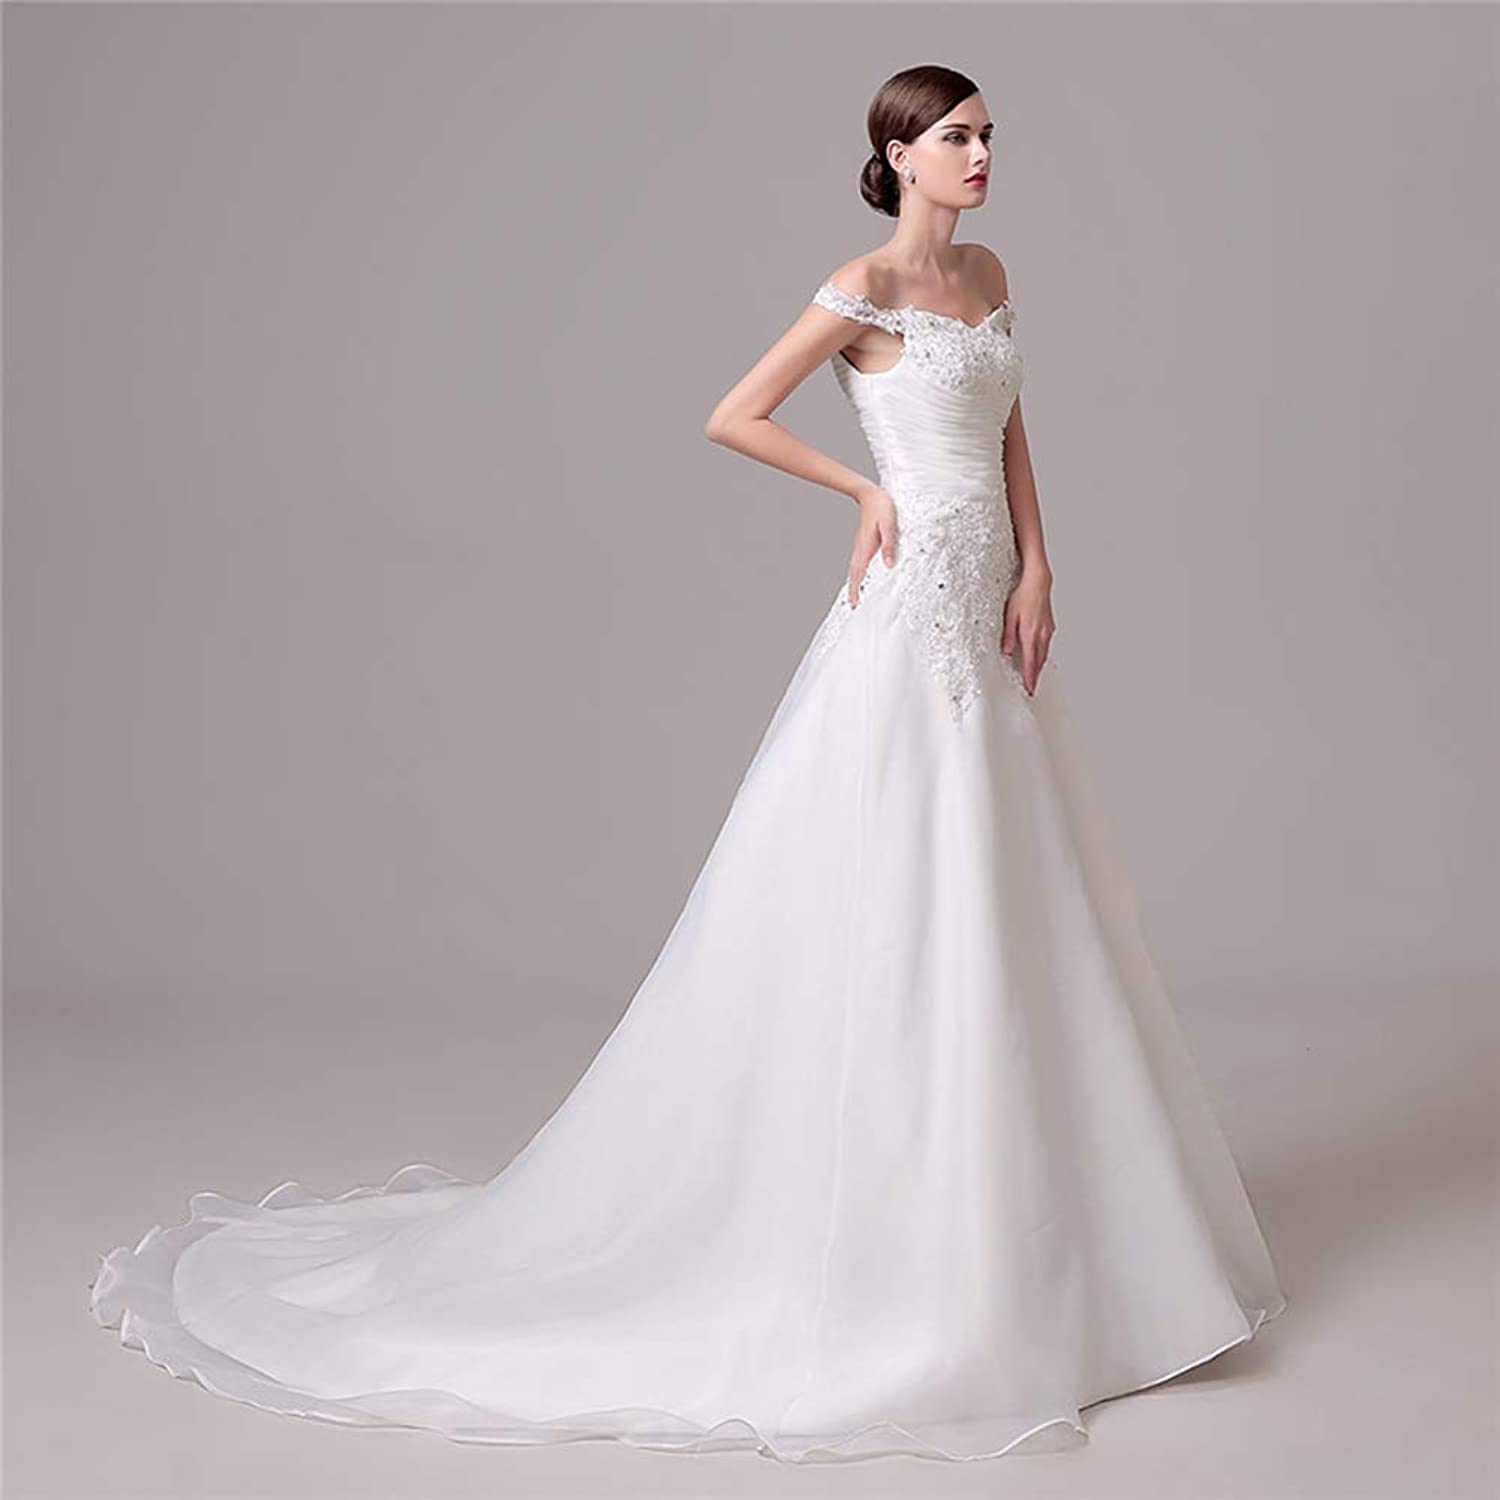 Women's Wedding Lace Strapless Elegant Temperament Princess Wedding Dress Adult Dress Evening Dress,US22W